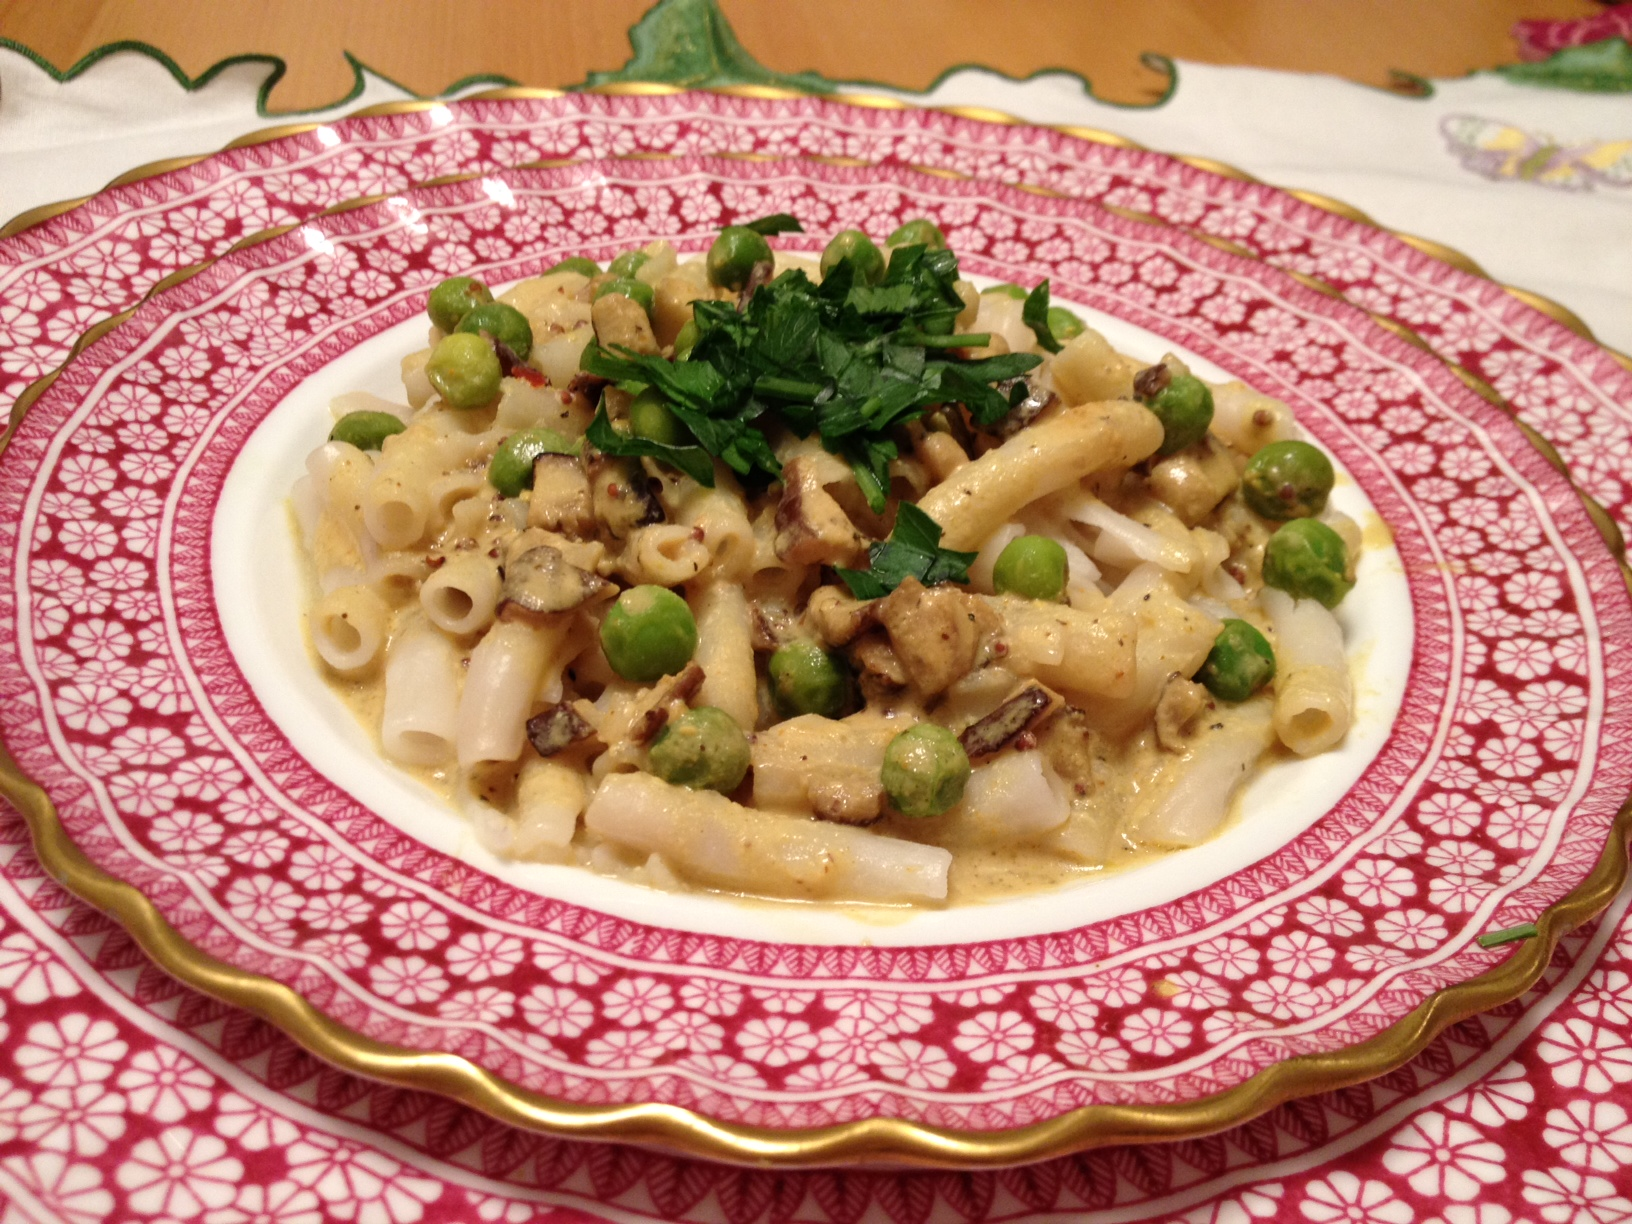 "Yummy Plants Vegan Recipe for ""Fancy Macaroni & Cheese with Peas and Mushrooms"" Featured in This Week's So Delicious Contest!"